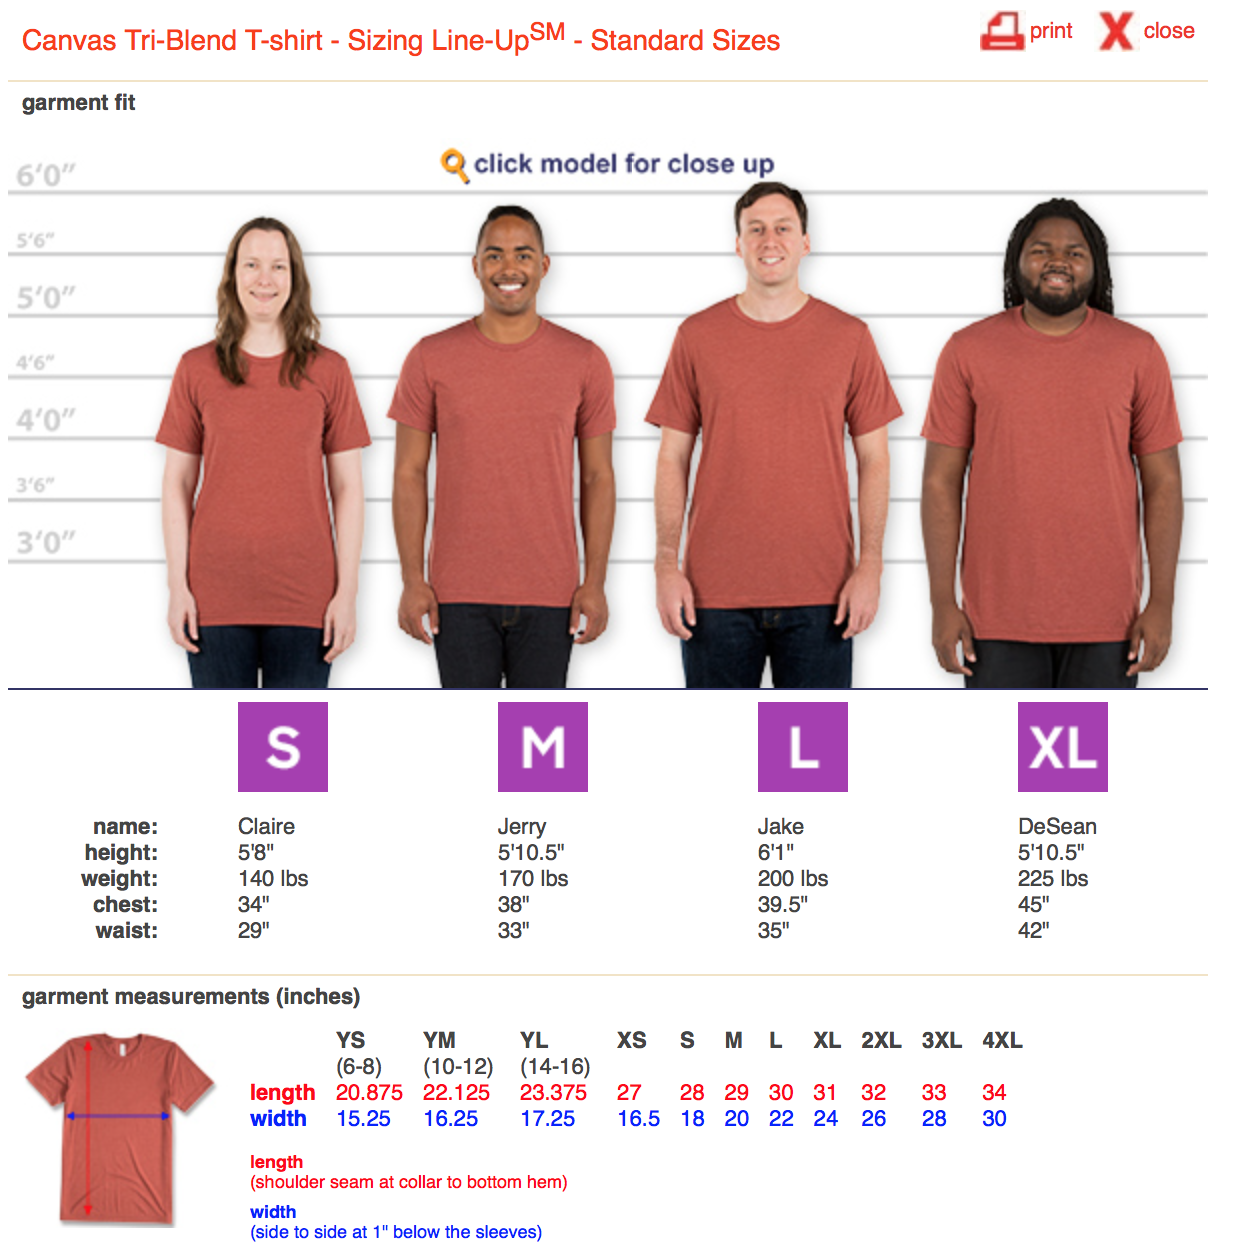 Unisex tee size guide.png